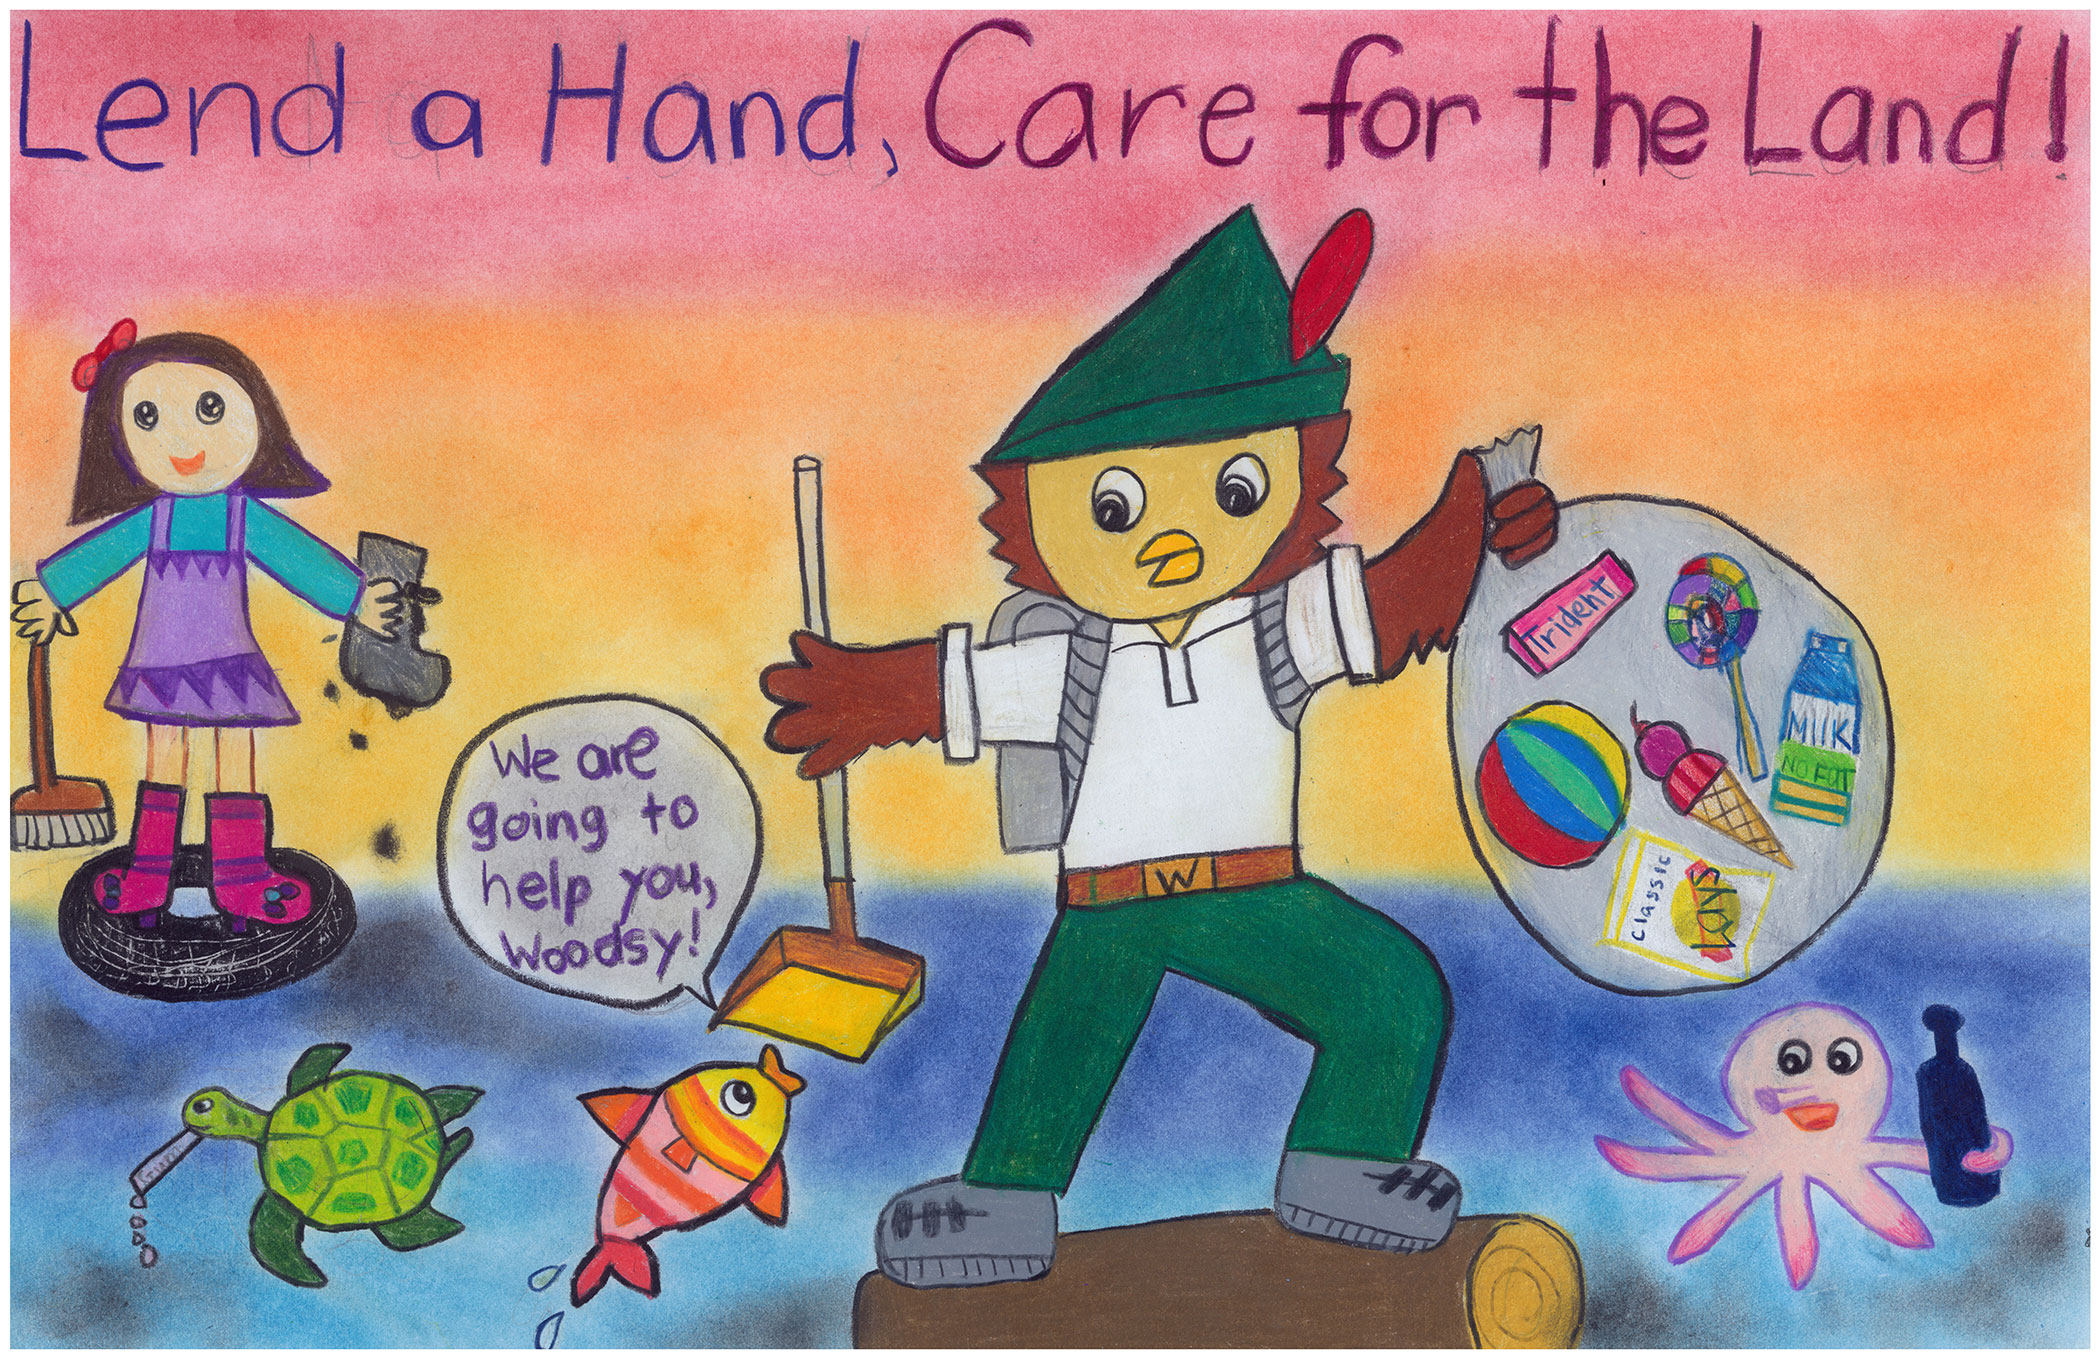 National Garden Club Poster Contest Entry